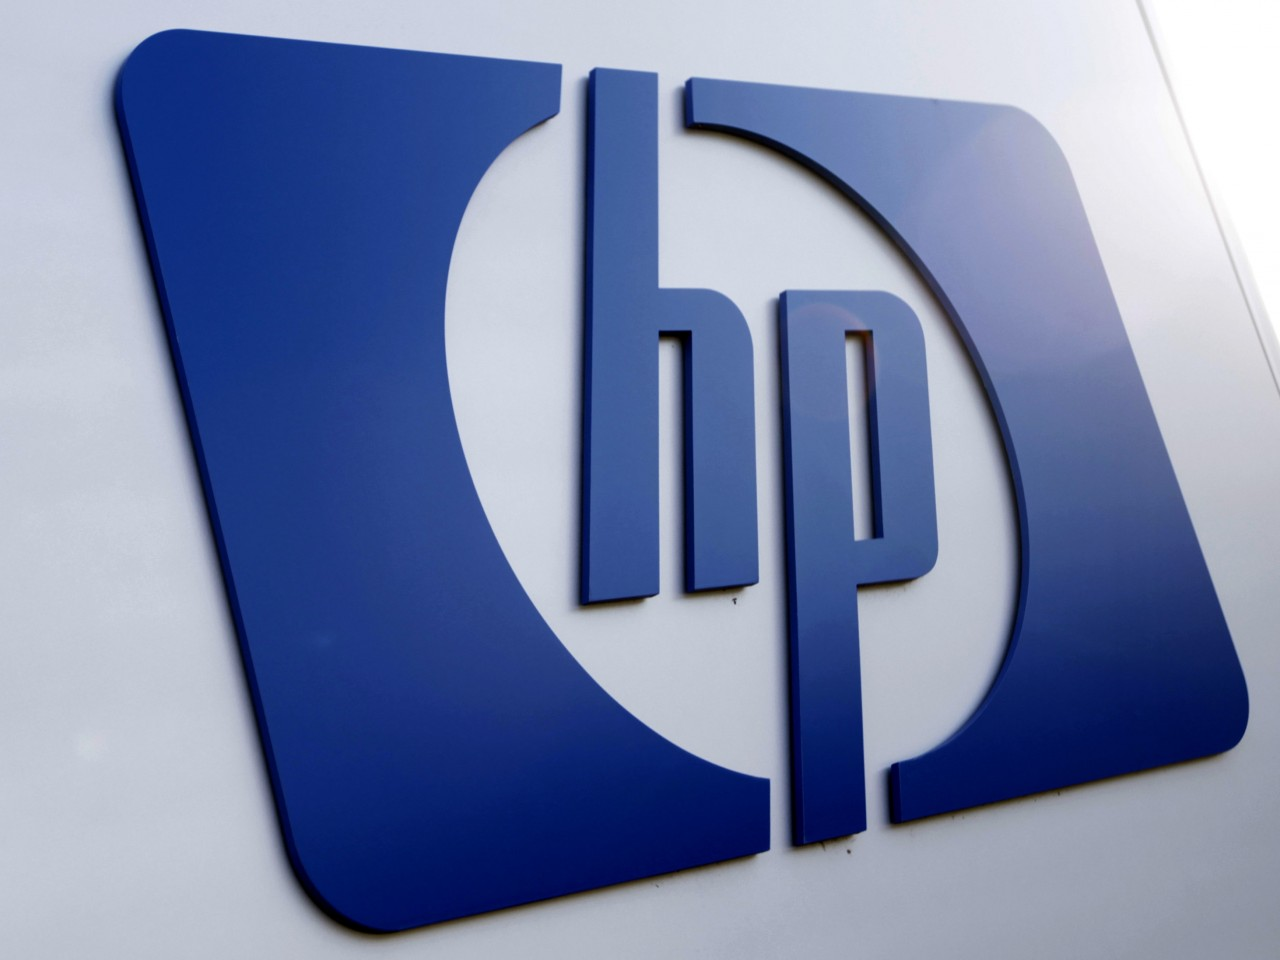 hewlett-packard-split.jpeg-1280x960.jpg